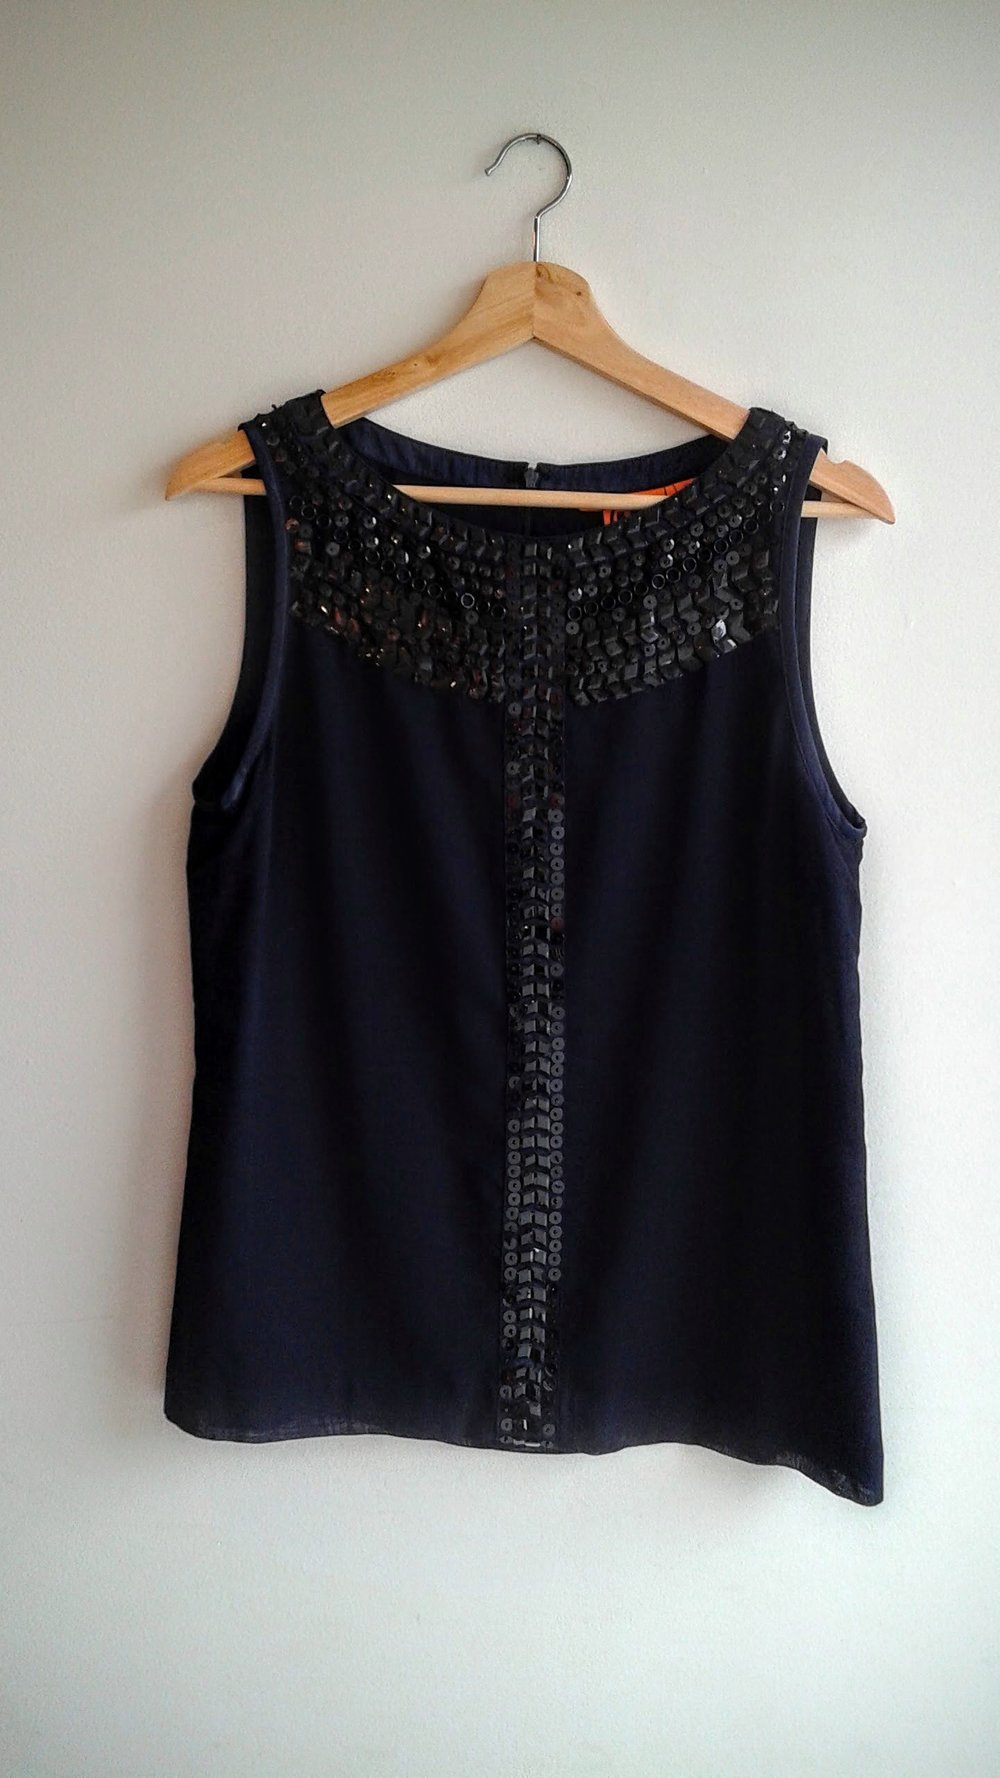 Tory Burch top; Size 10, $42